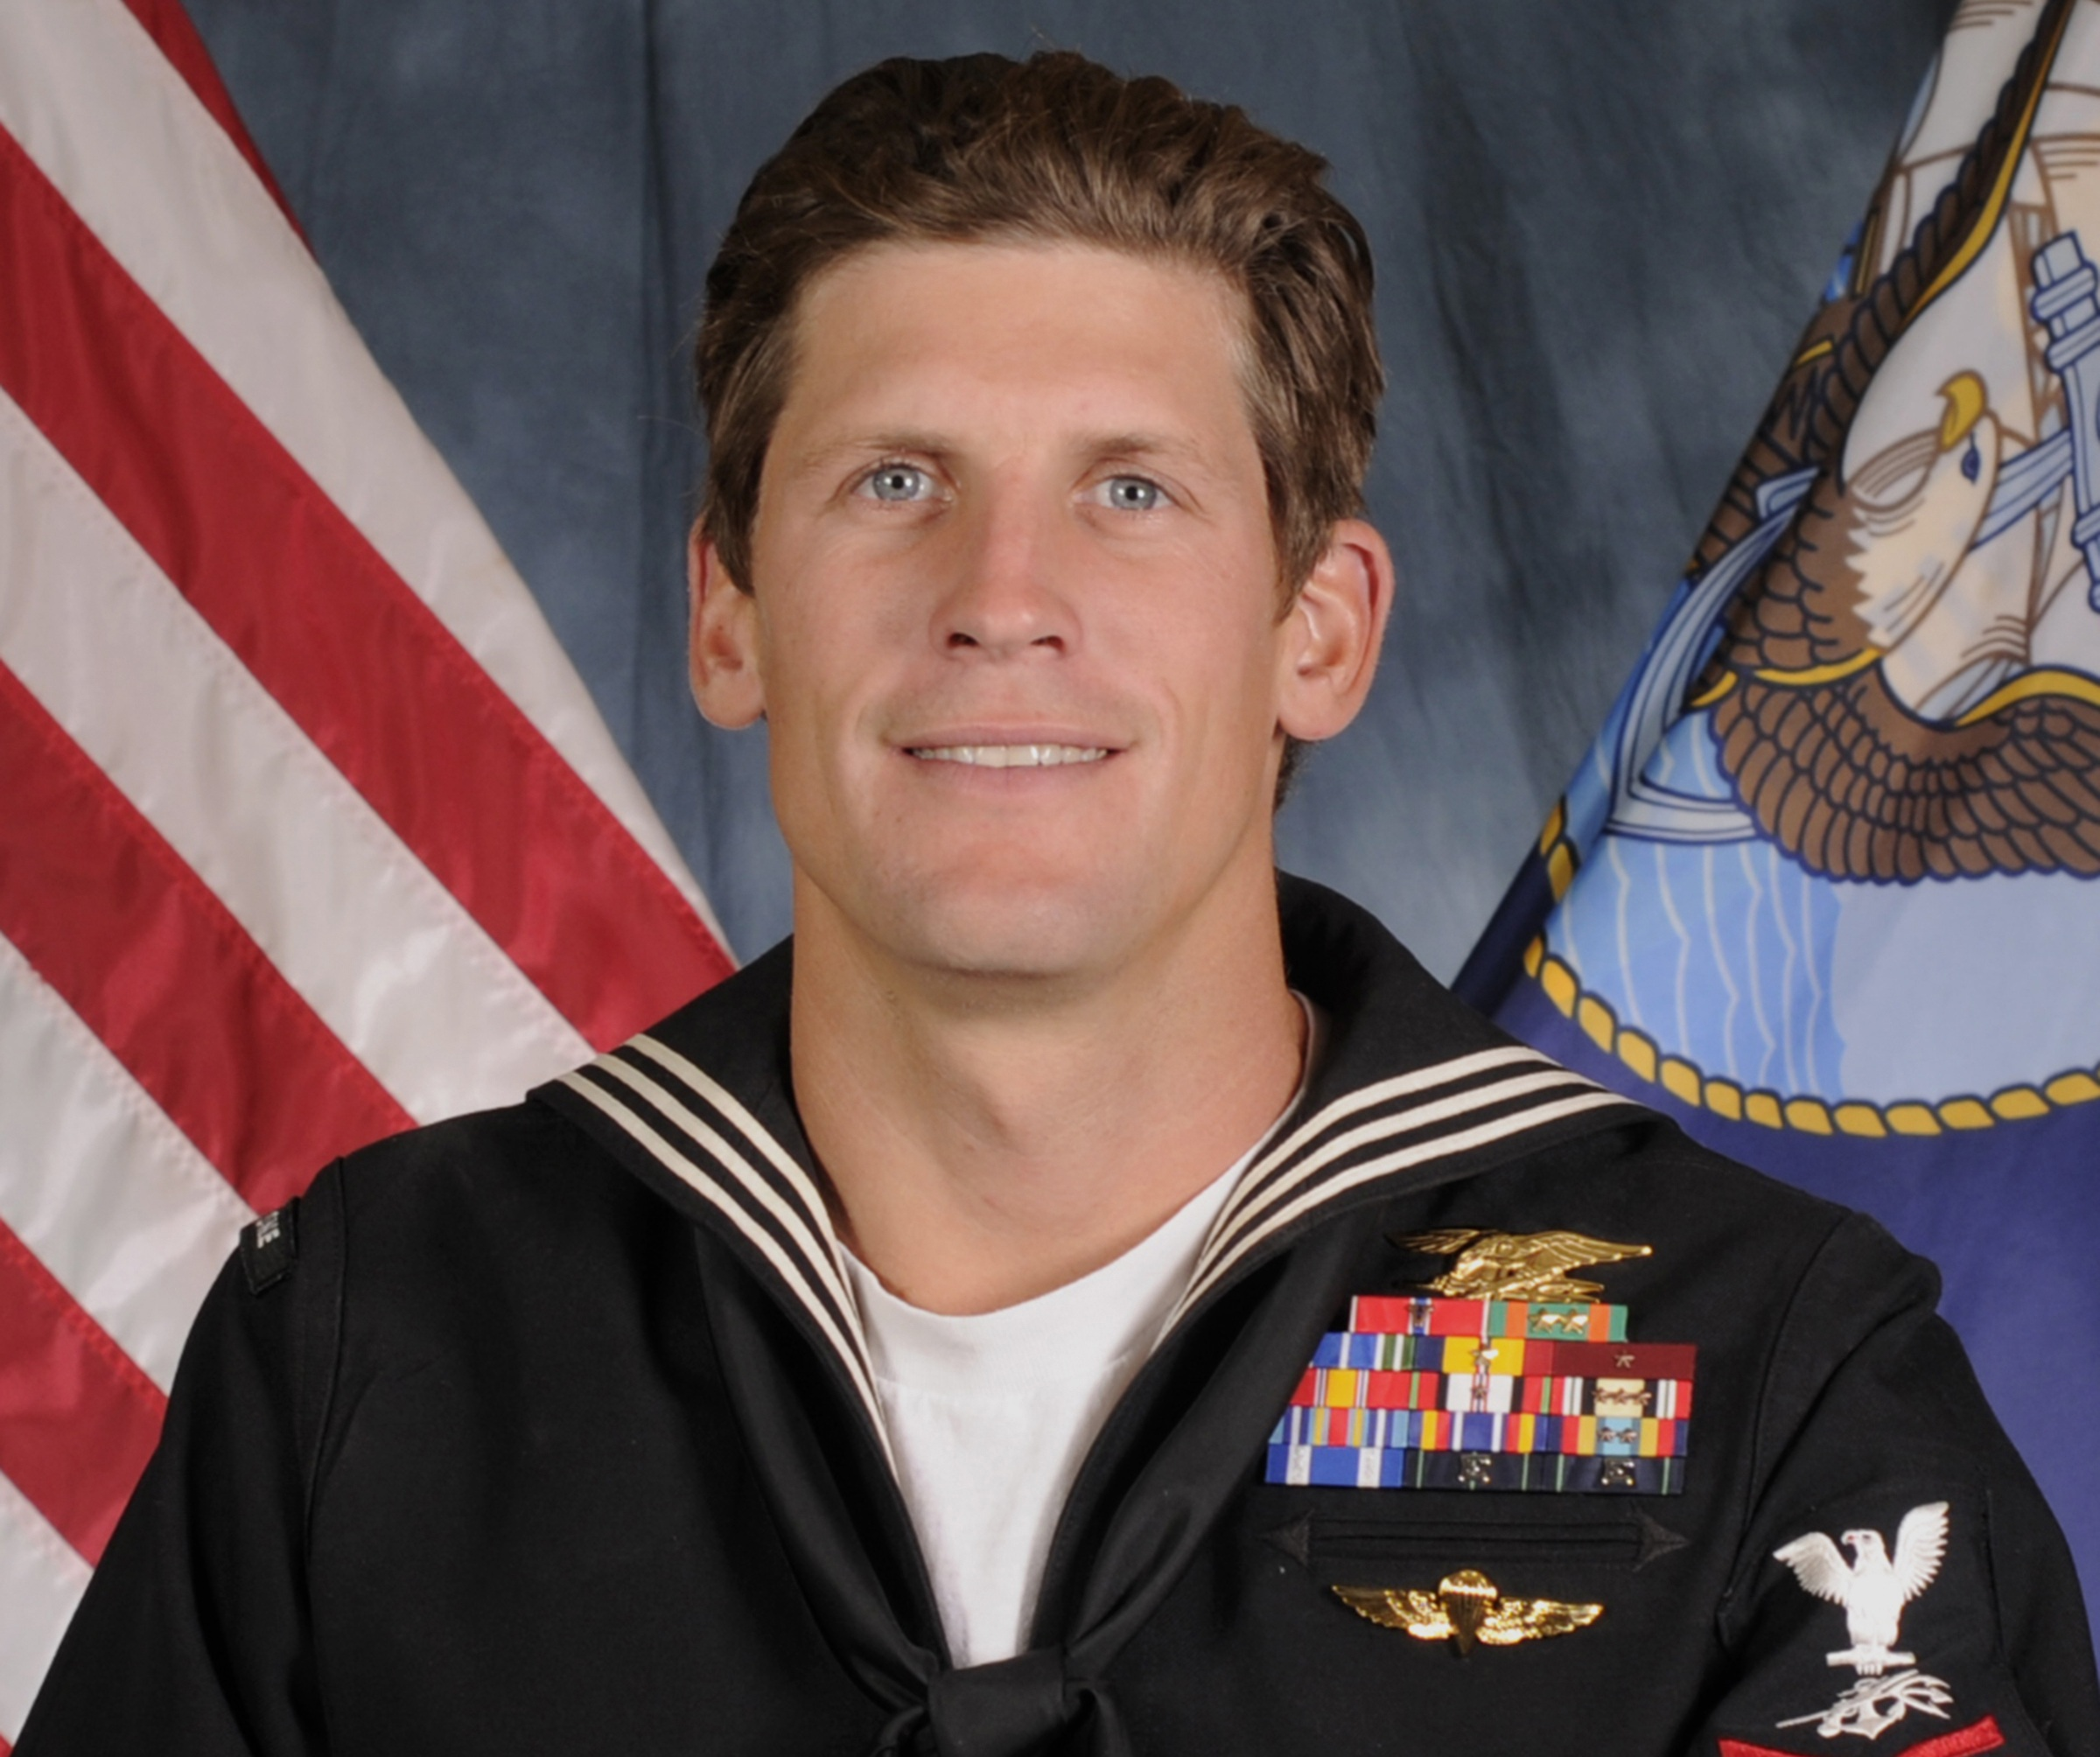 U.S. Navy Warfare Operator 1st Class Charles Keating IV, 31, of San Diego. U.S. Navy via Reuters